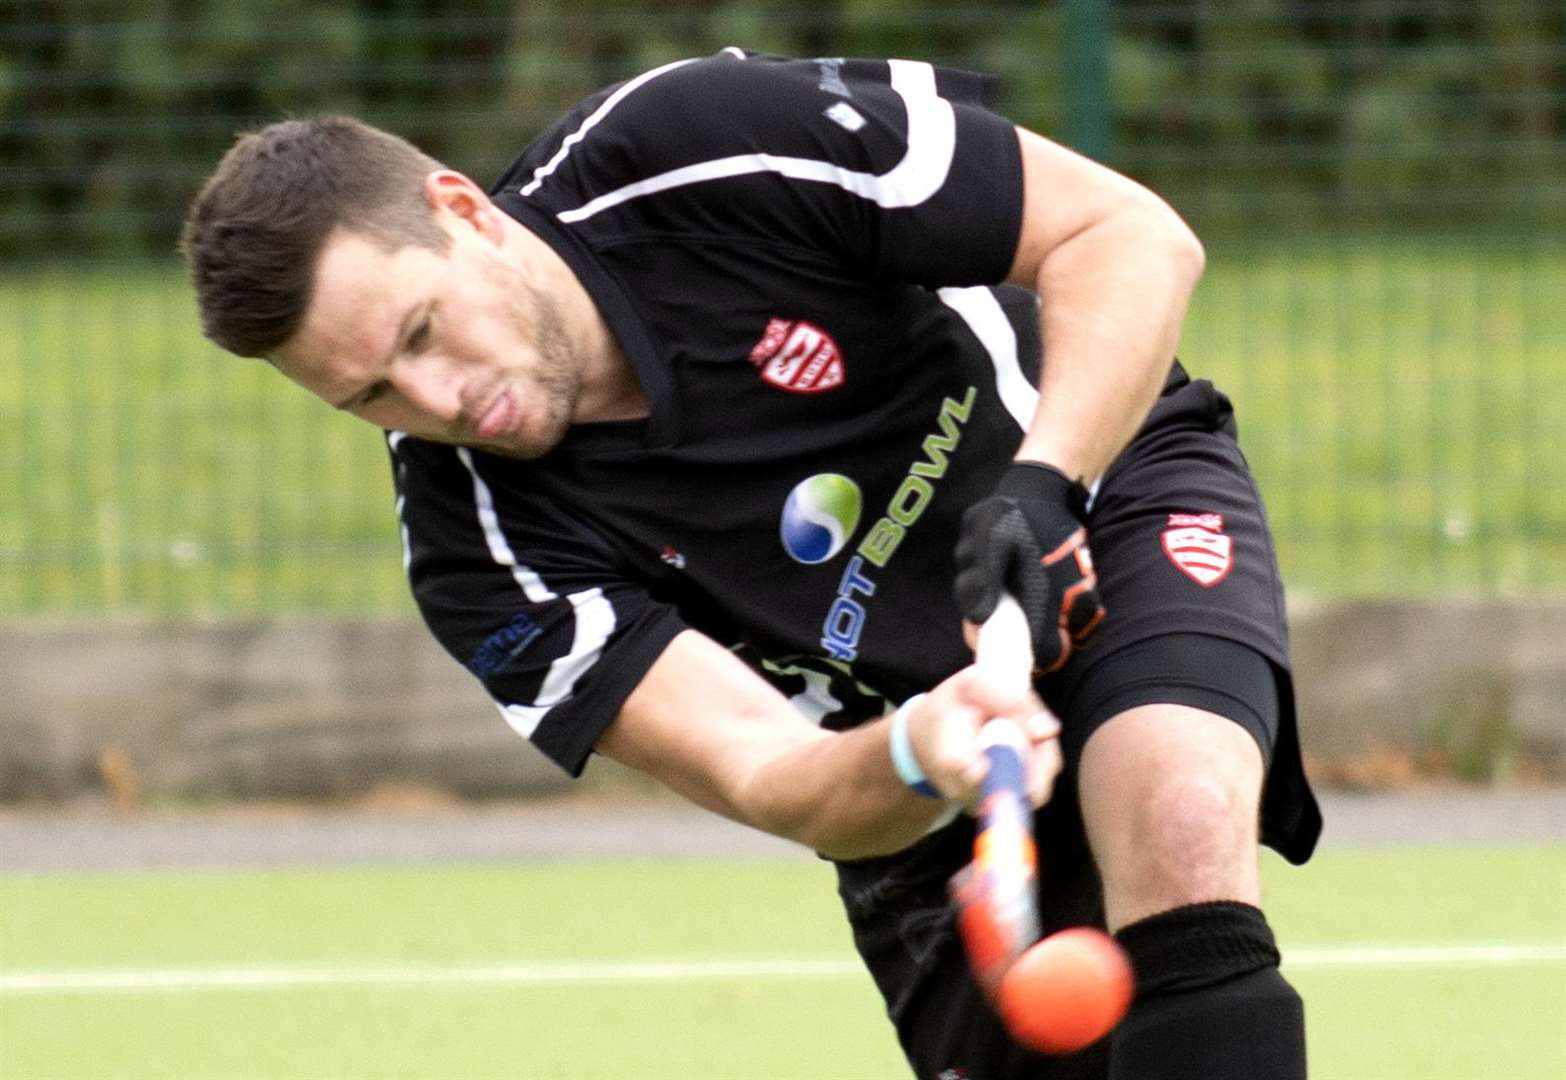 HOCKEY: Dragons roar to first victory after strong second half showing